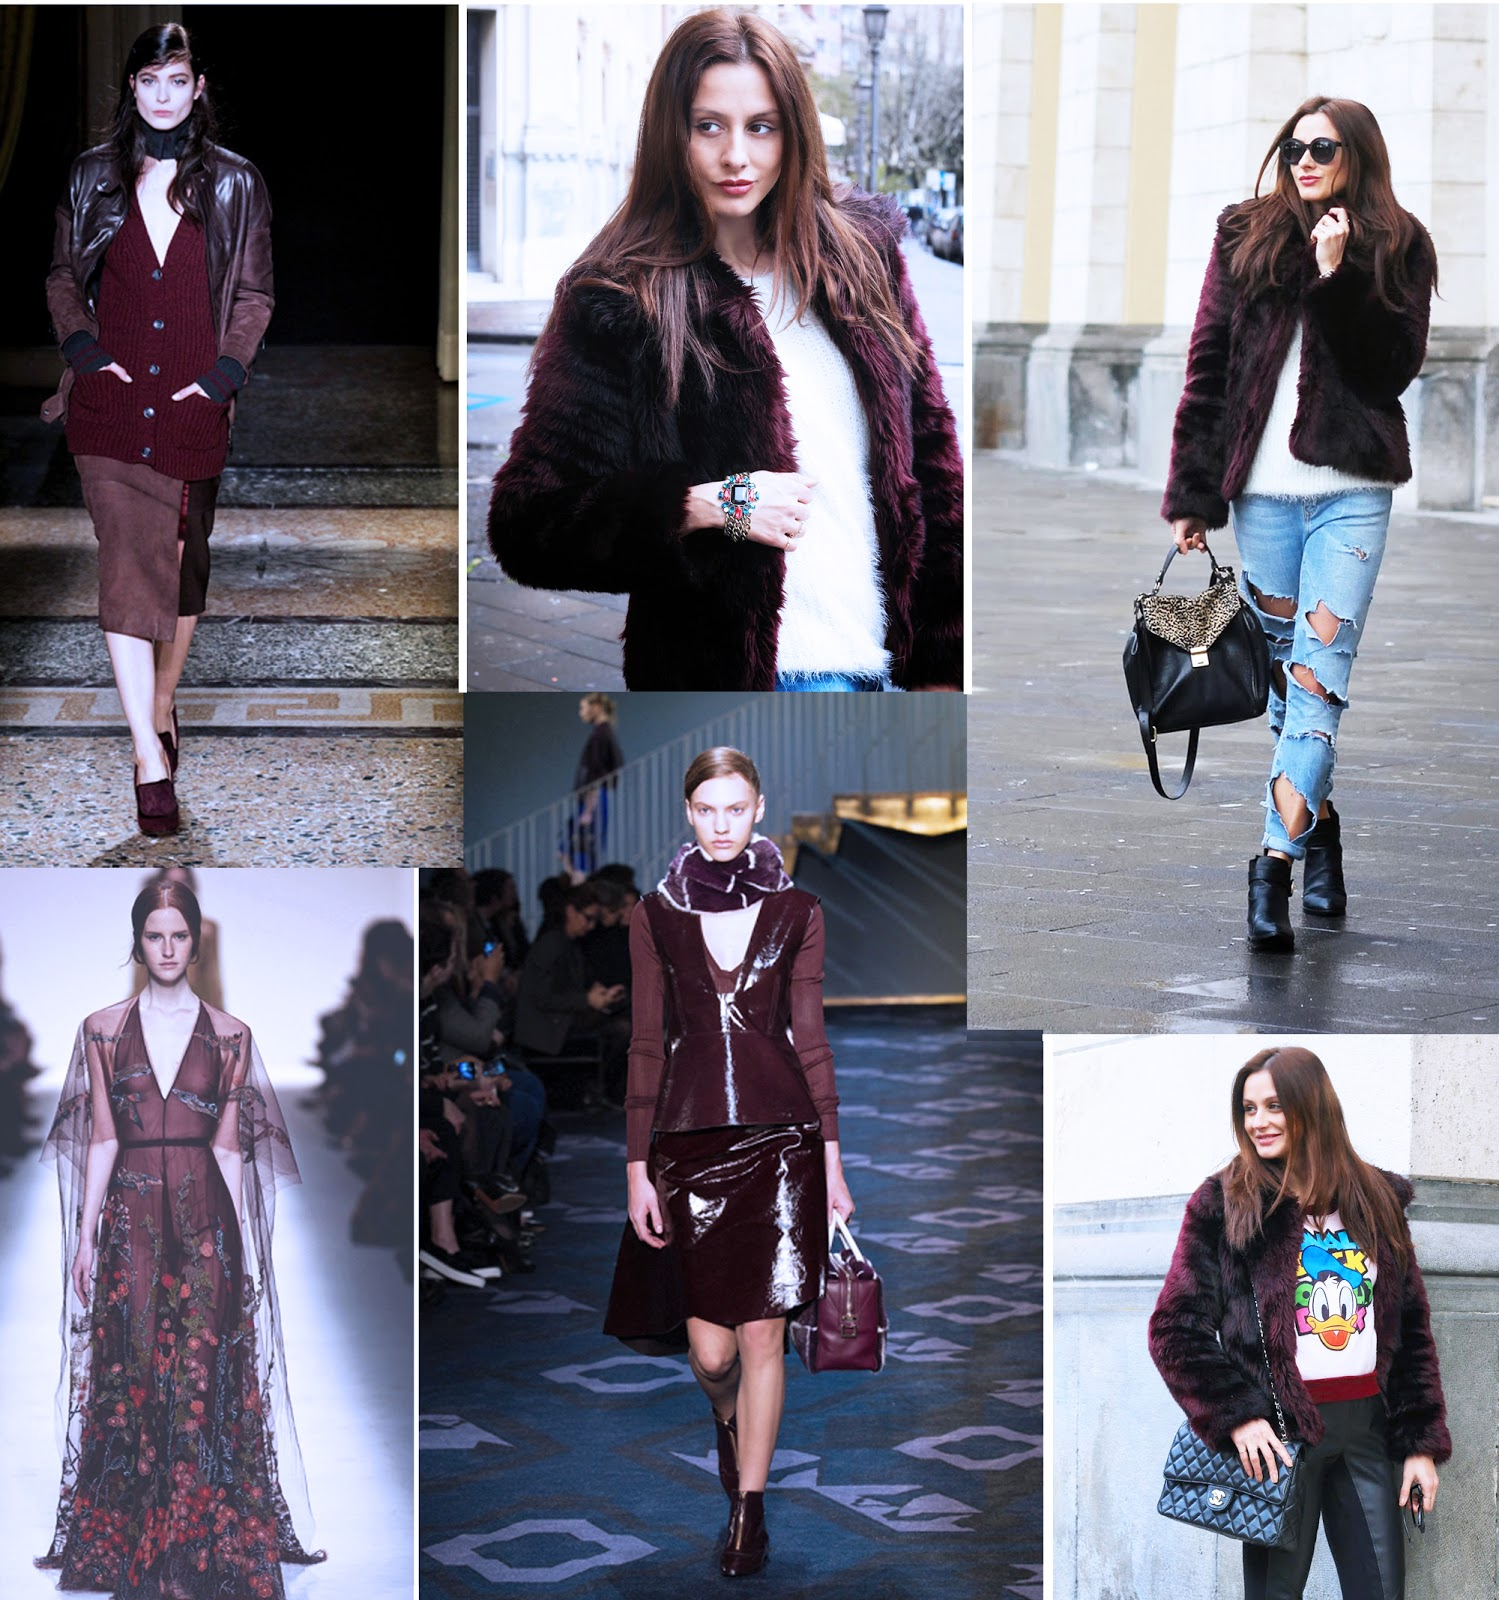 Shades of burgundy!